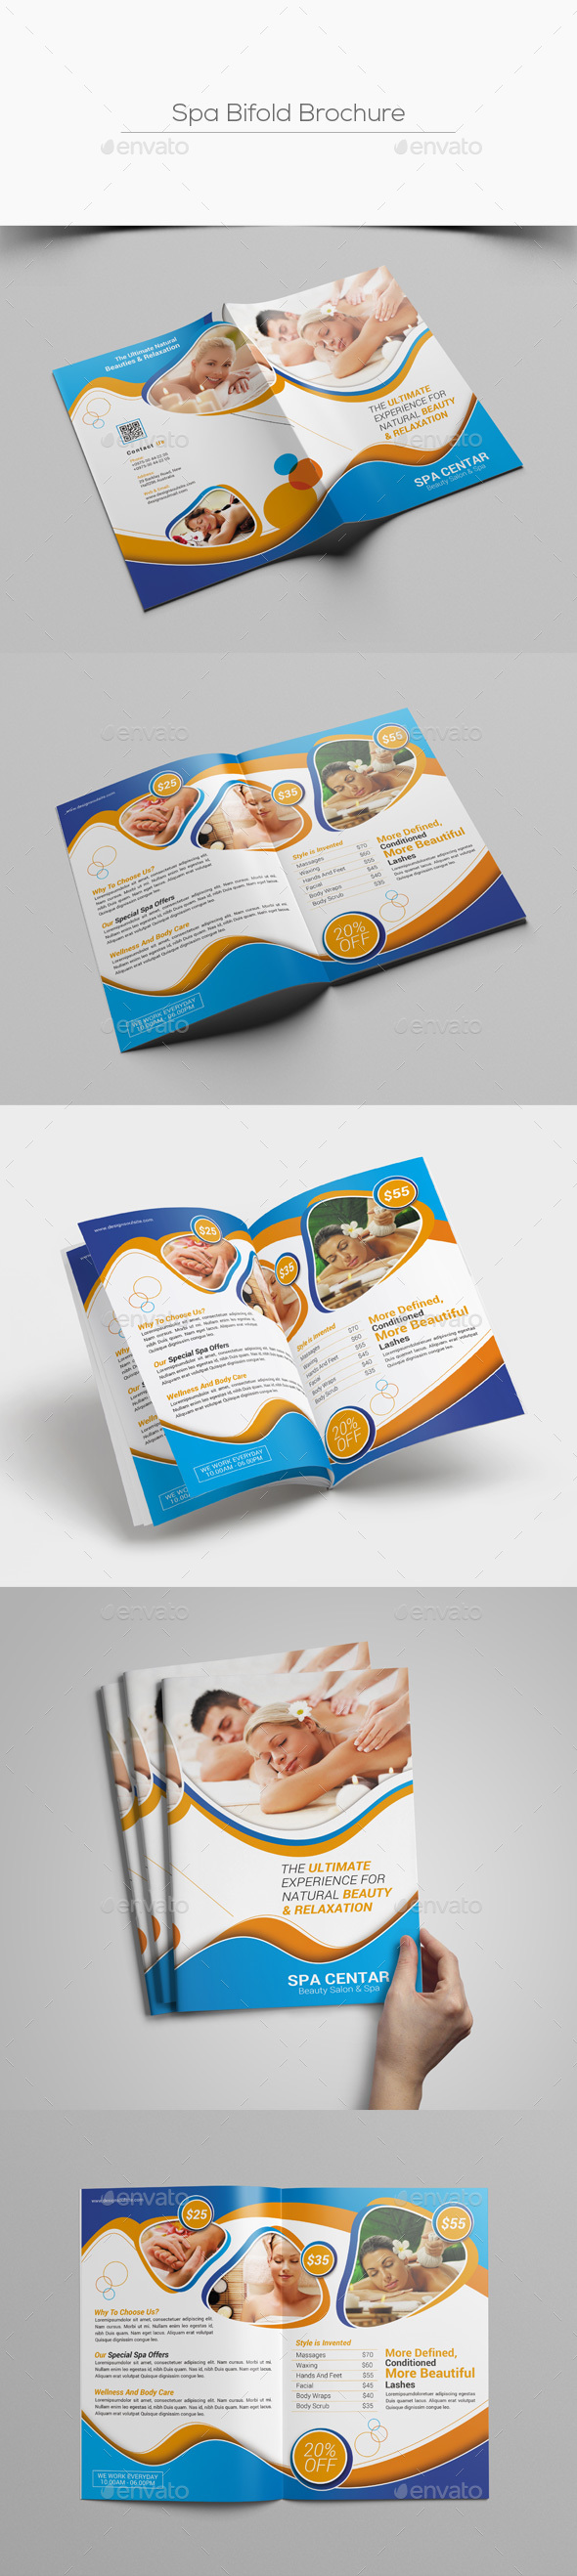 Spa Bifold Brochure - Corporate Brochures